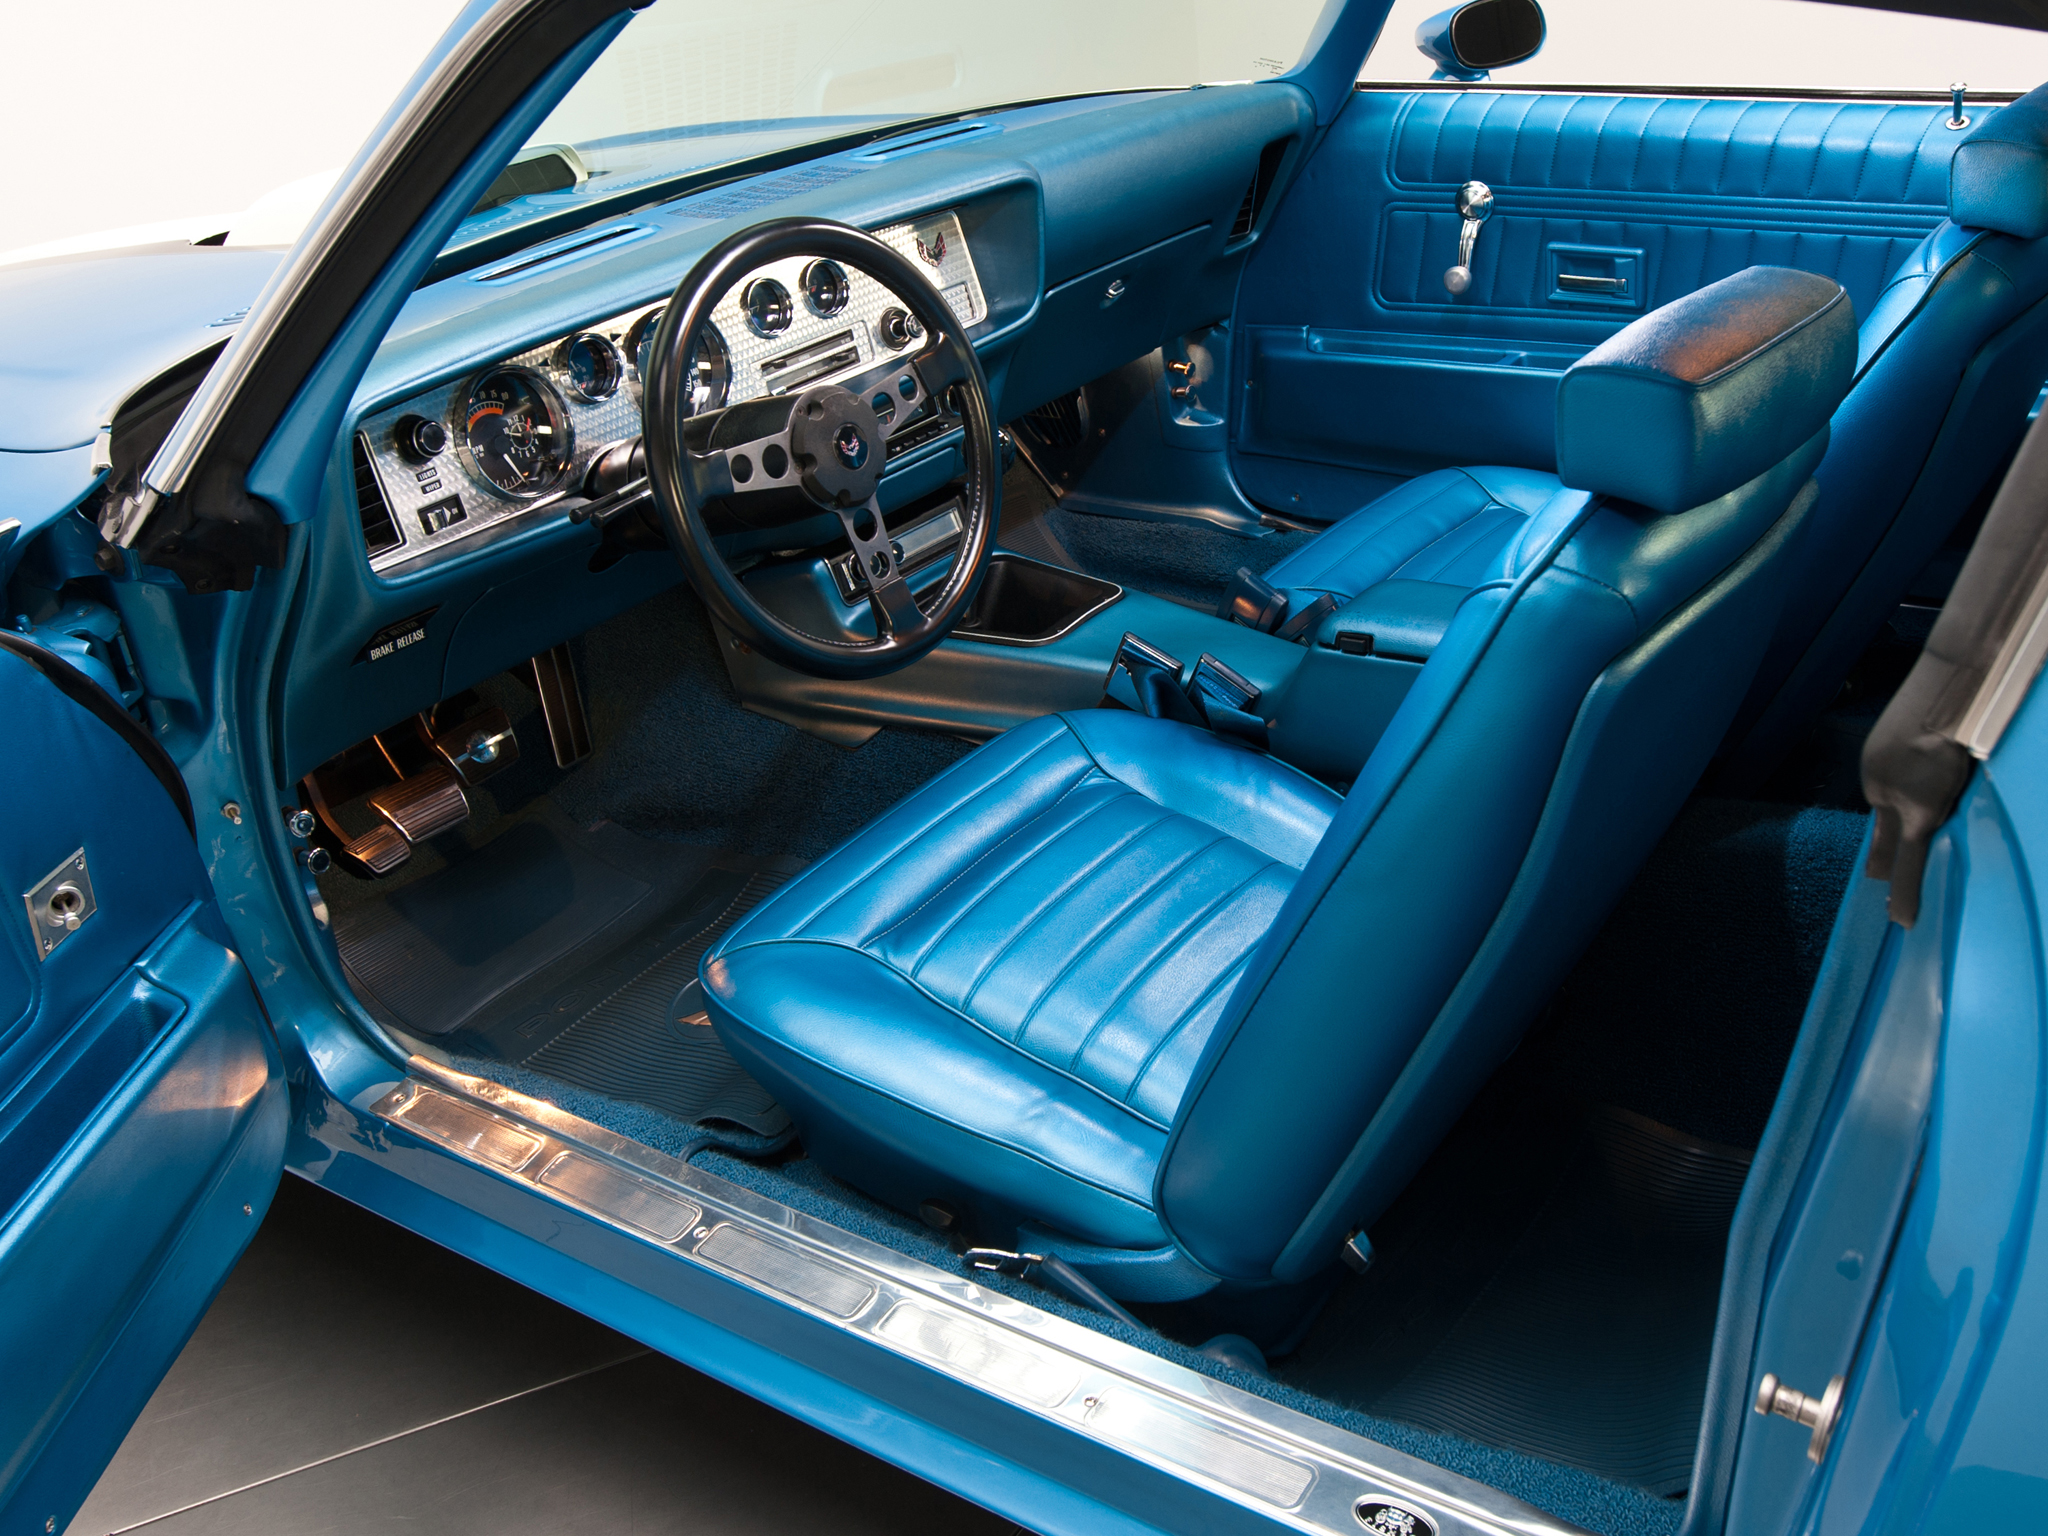 1970 Pontiac Firebird Trans-Am Ram Air III muscle classic interior wallpaper background